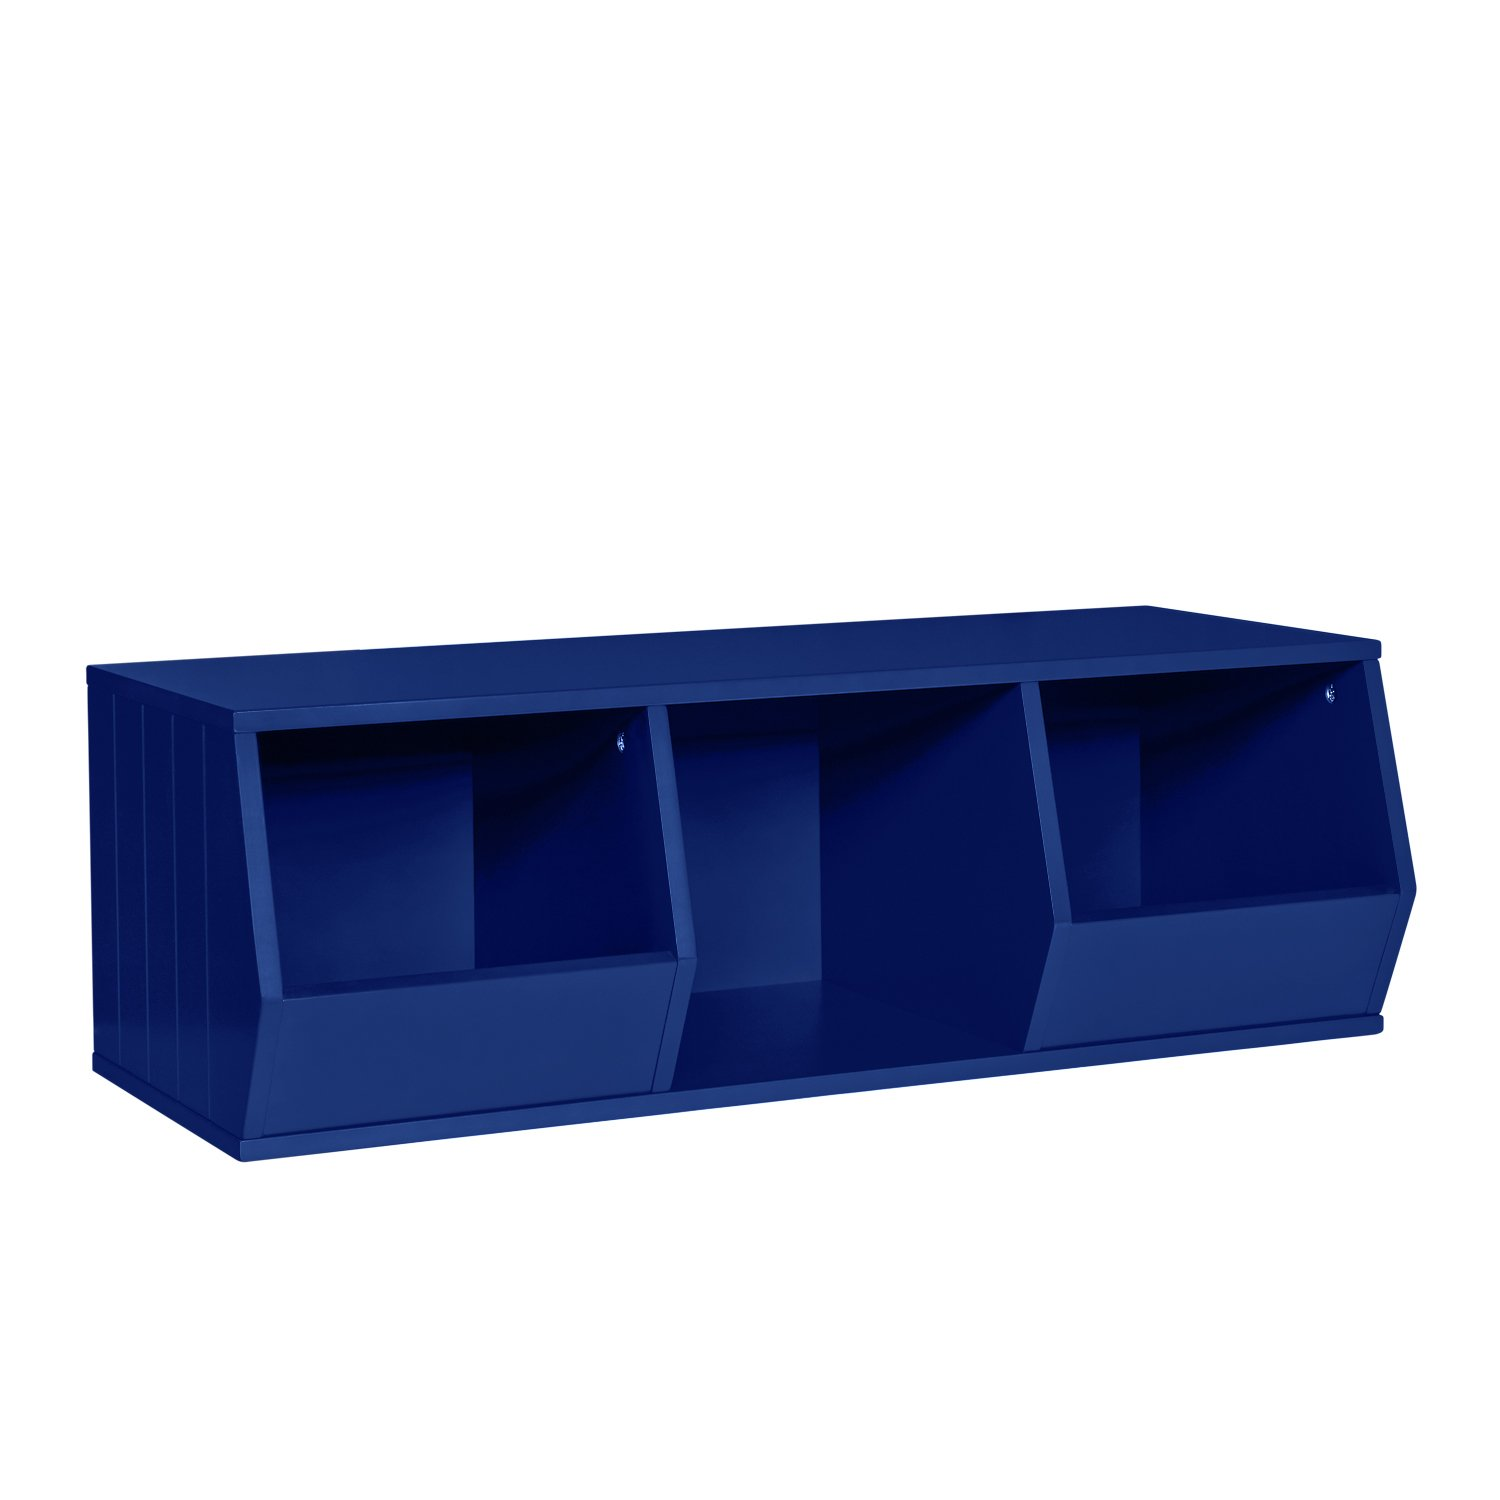 RiverRidge Kids 02, 073 Storage Stacker, 2 Veggie Bins, 1 Cubby, Navy 02-073